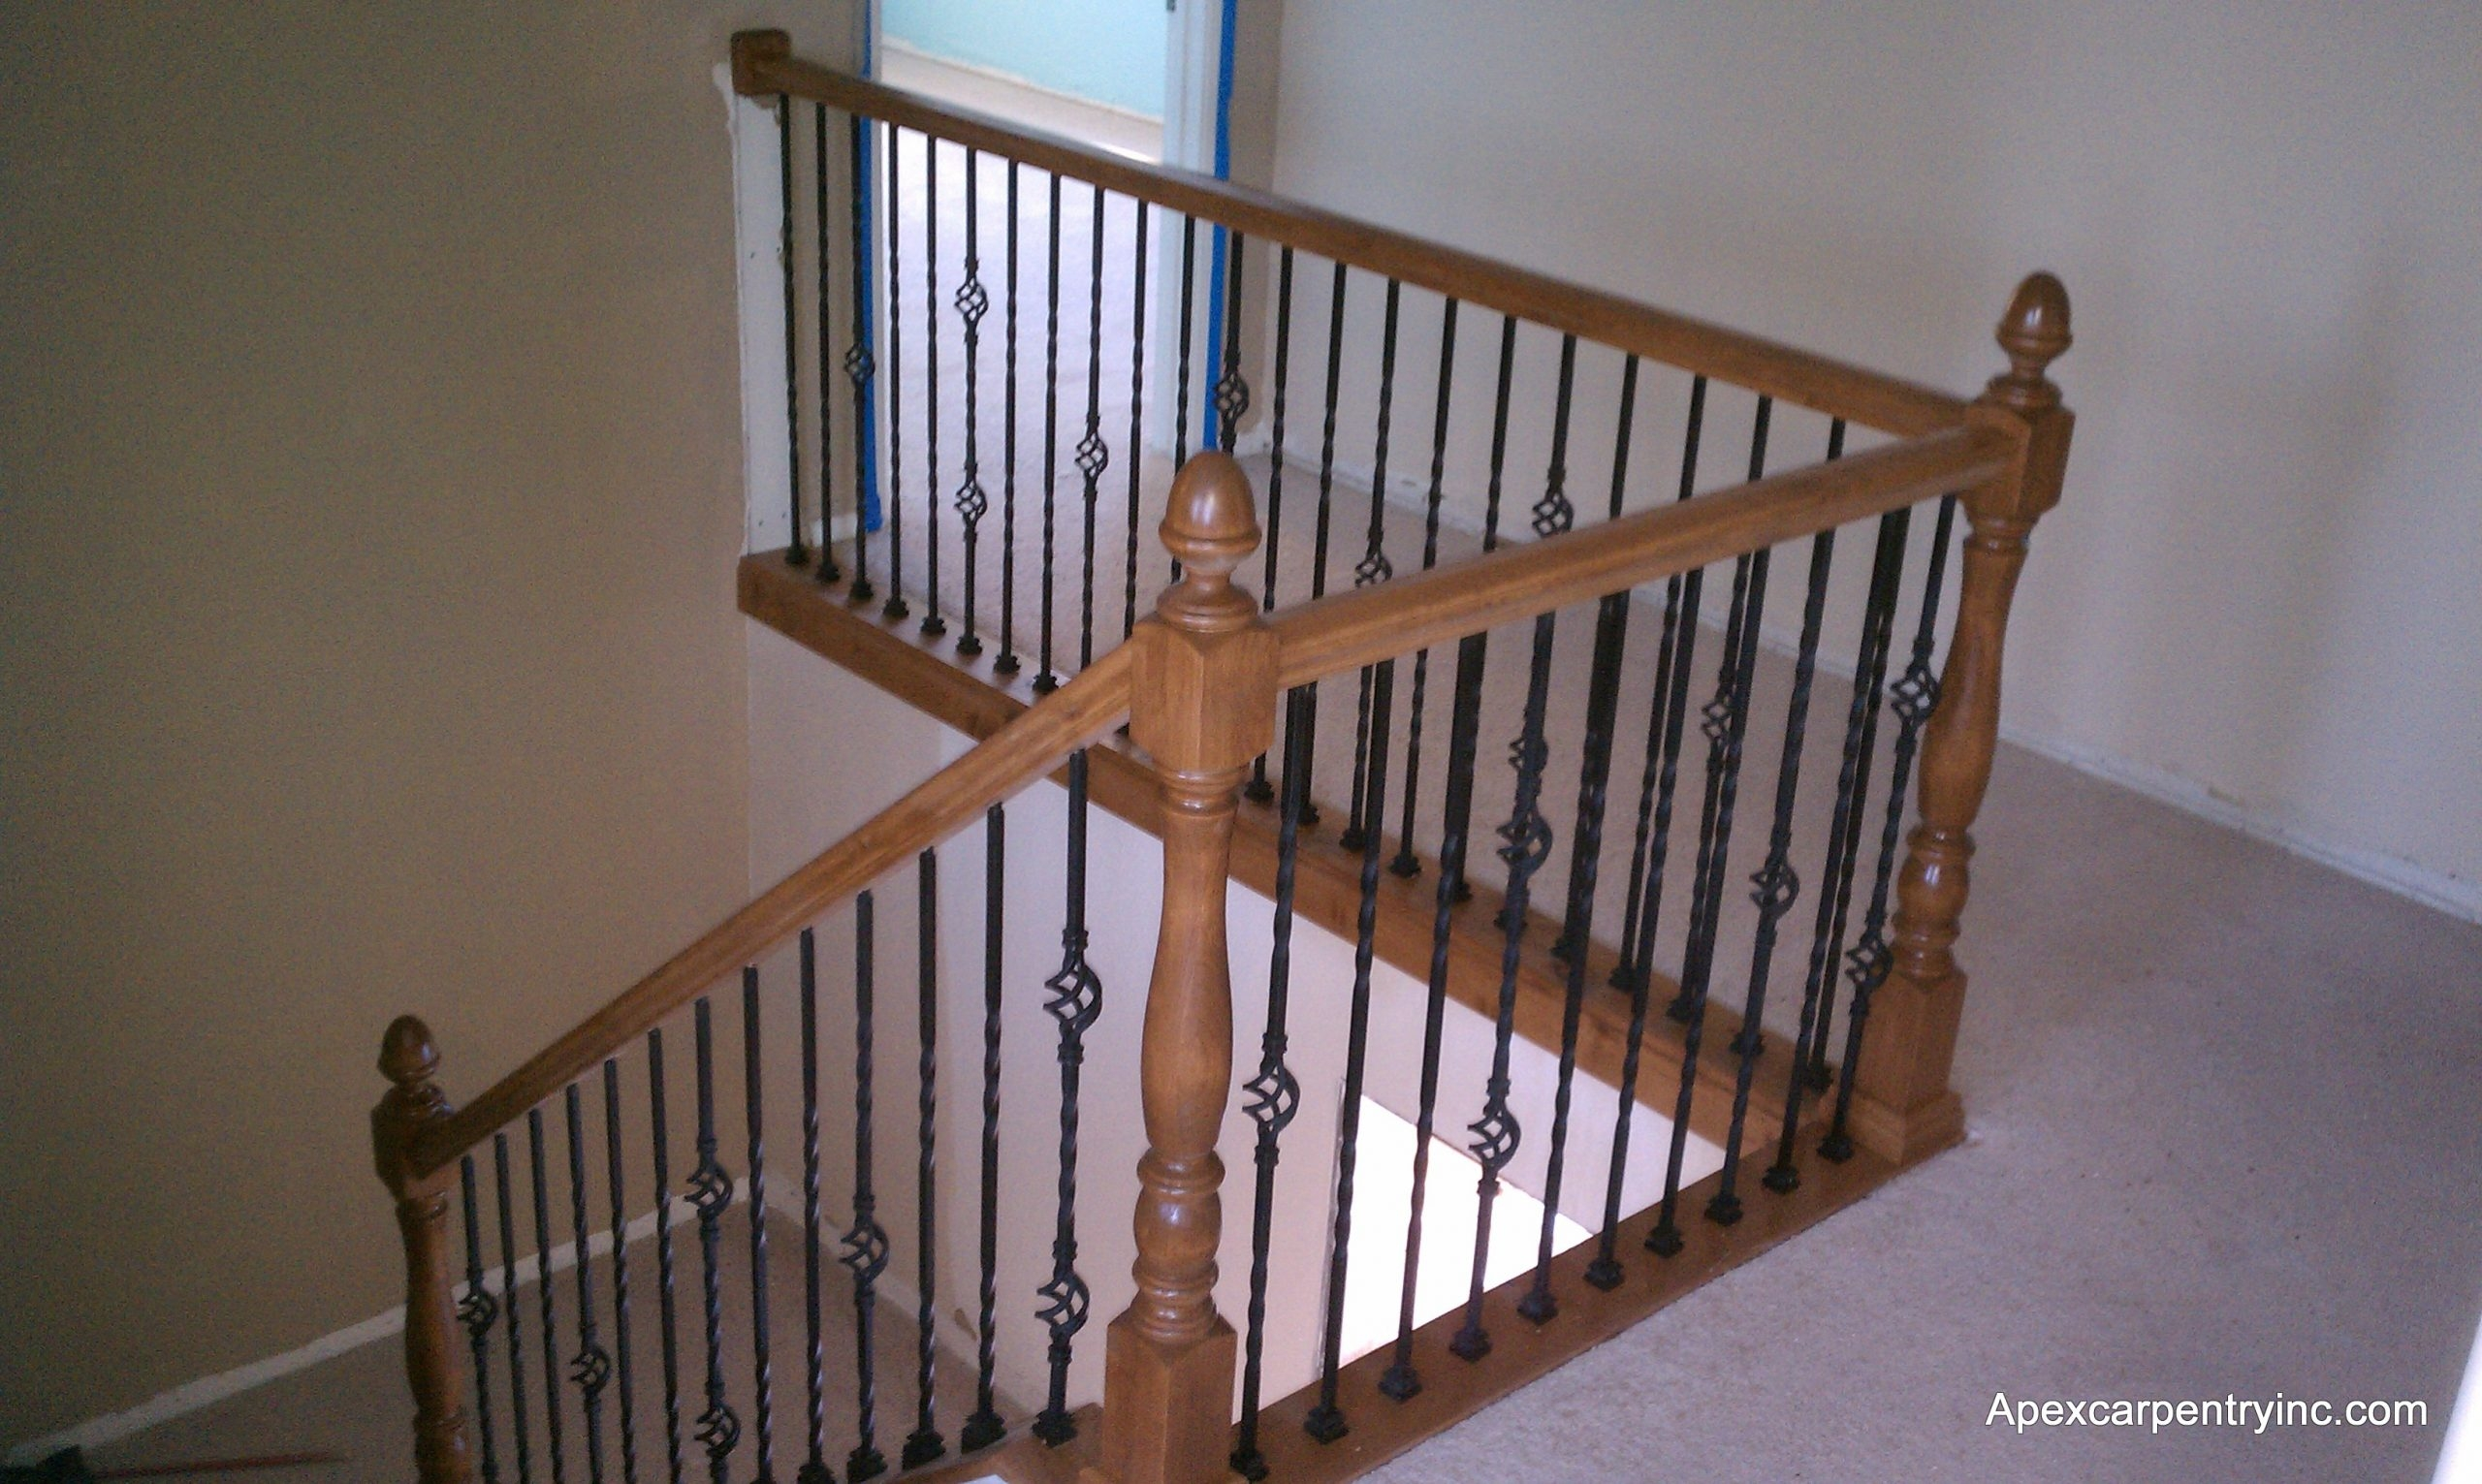 Utah Stair Railing   Shaker Style Newel Post   Stair Newel   Farmhouse   Stained   Porch   Shingle Style